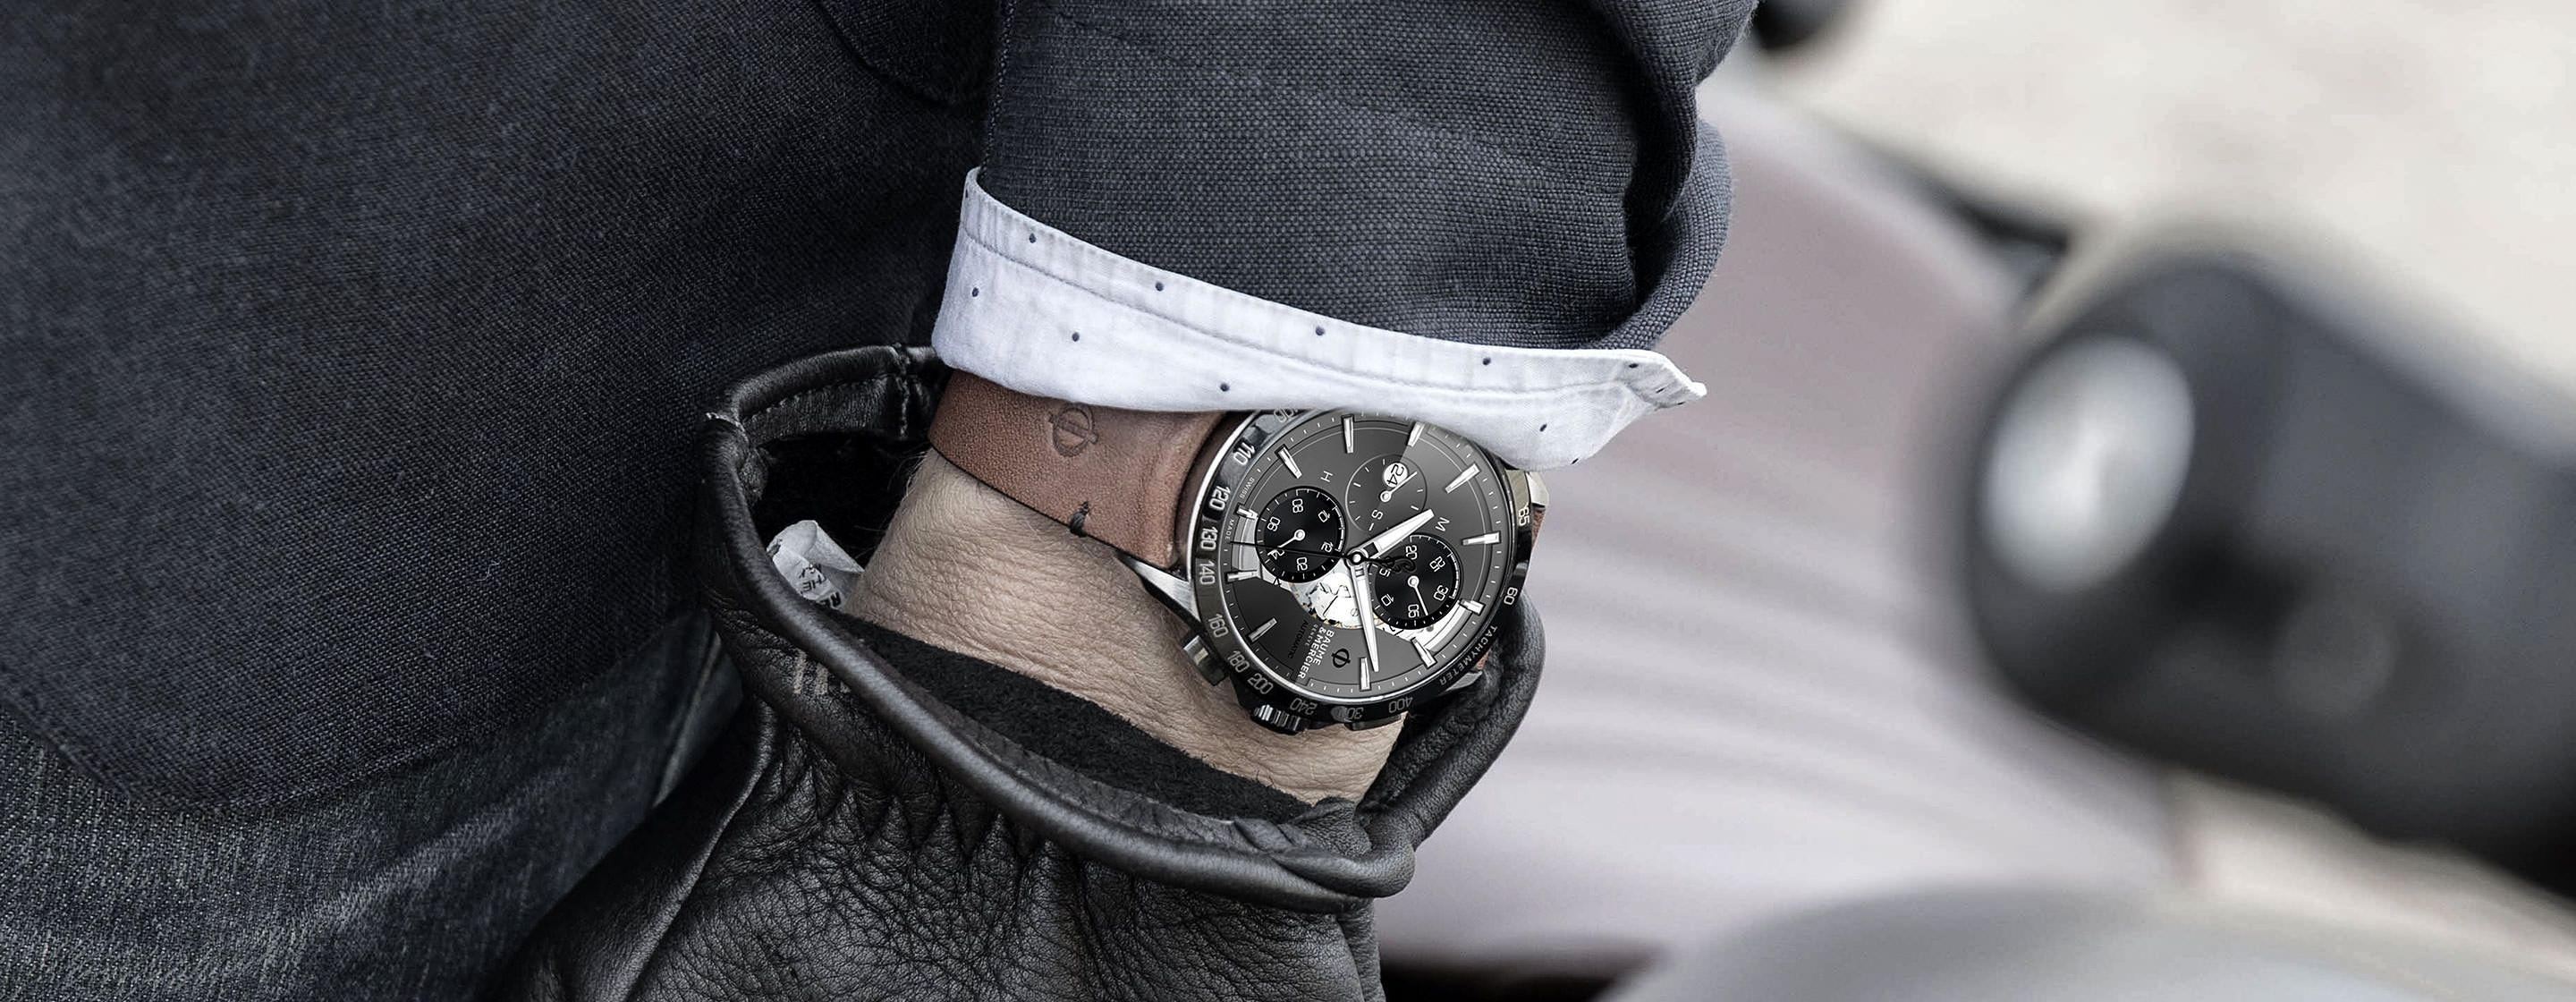 dc9a1769b 10 Best Chronograph Watches for Men in 2019 - The Watch Guide